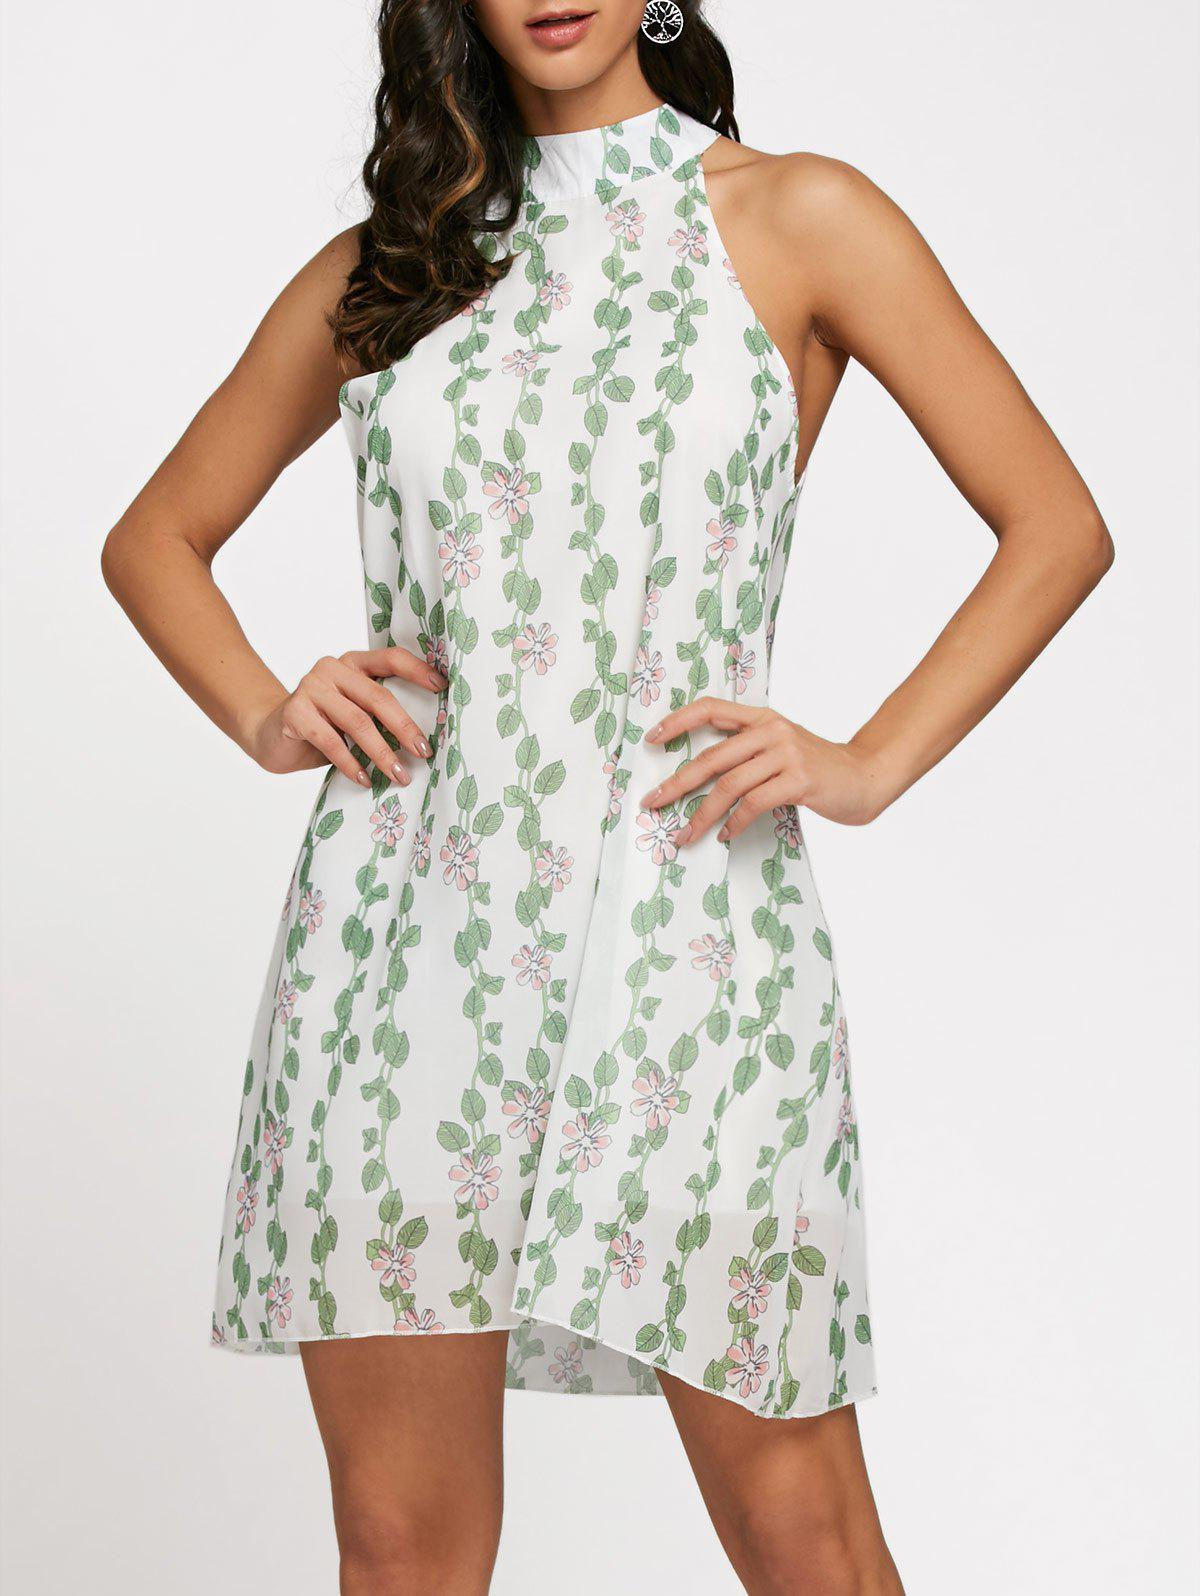 Store Floral Leaf Print Sleeveless Chiffon Shift Dress